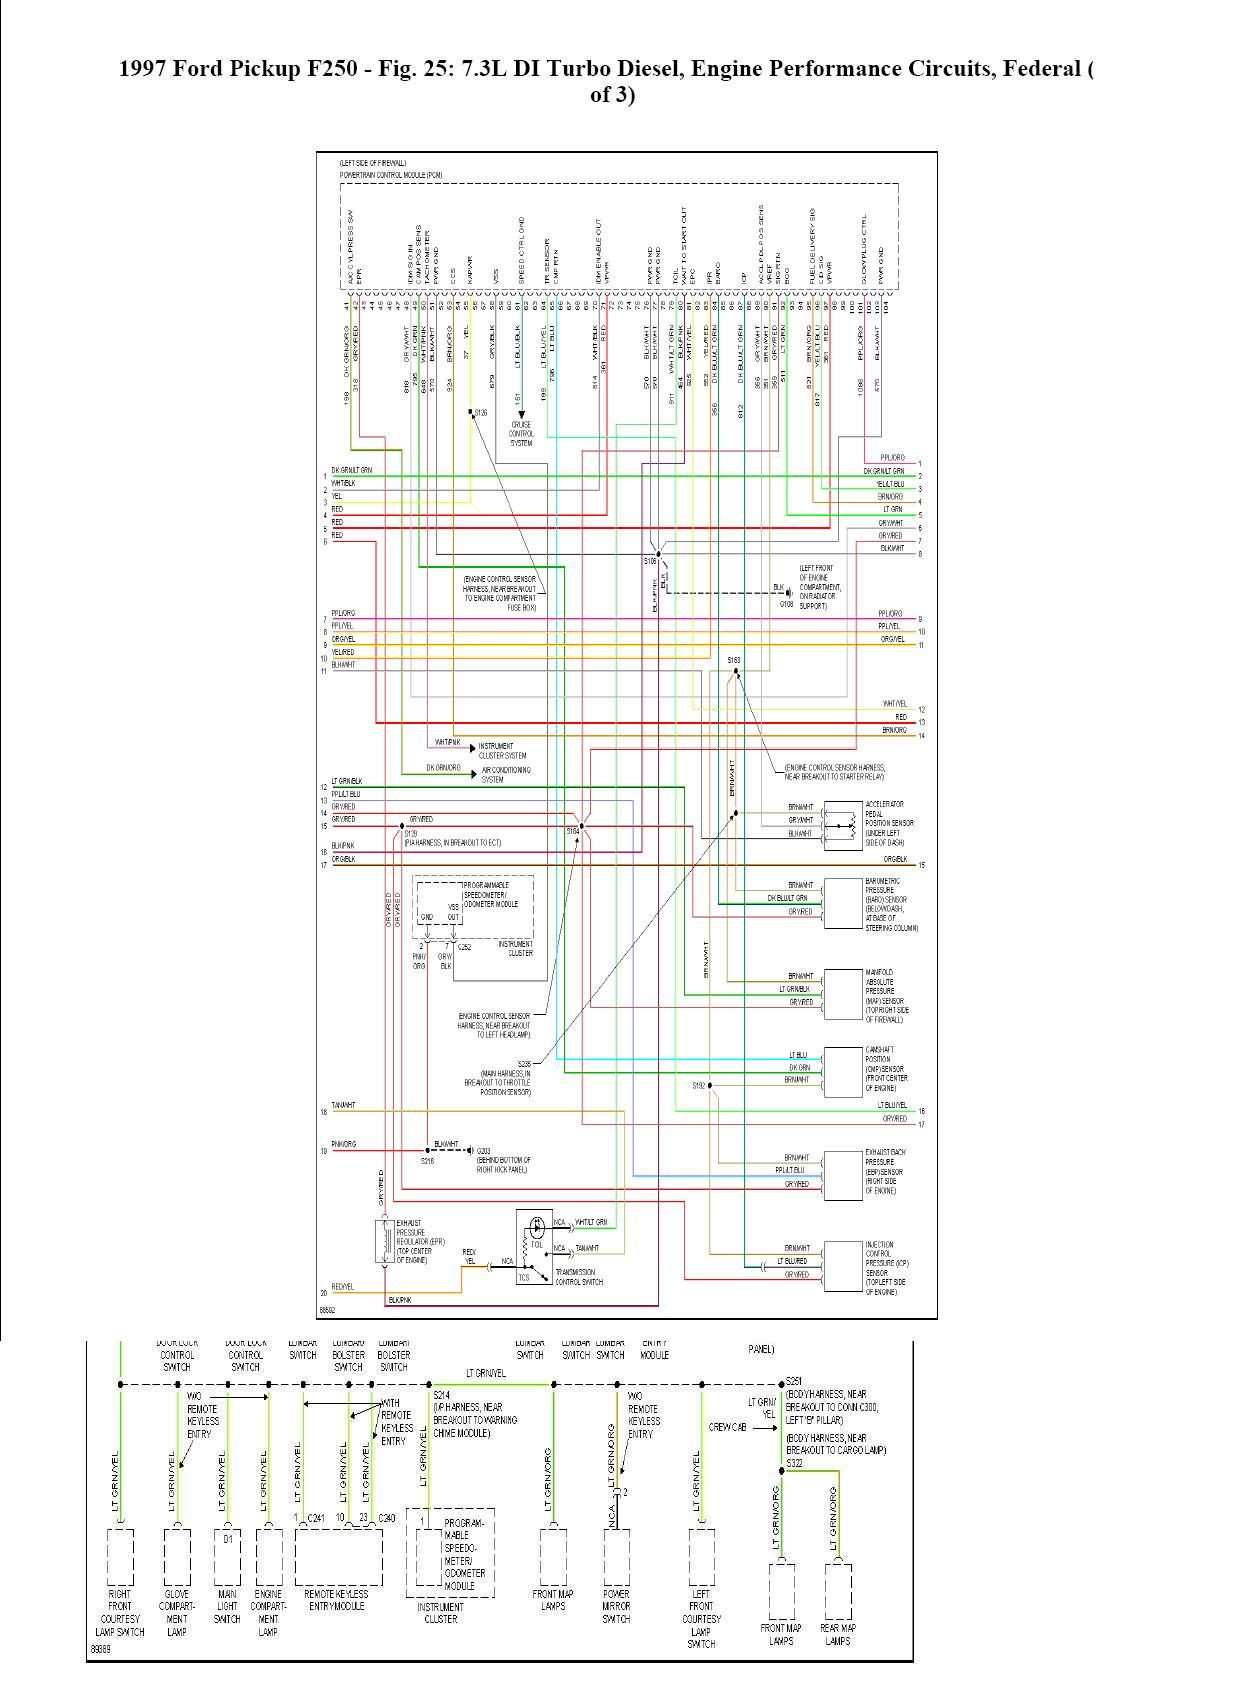 7 3 powerstroke engine wiring diagram wiring diagram centrecomplete wiring schematic powerstroke 1997 ford f350  [ 1243 x 1690 Pixel ]